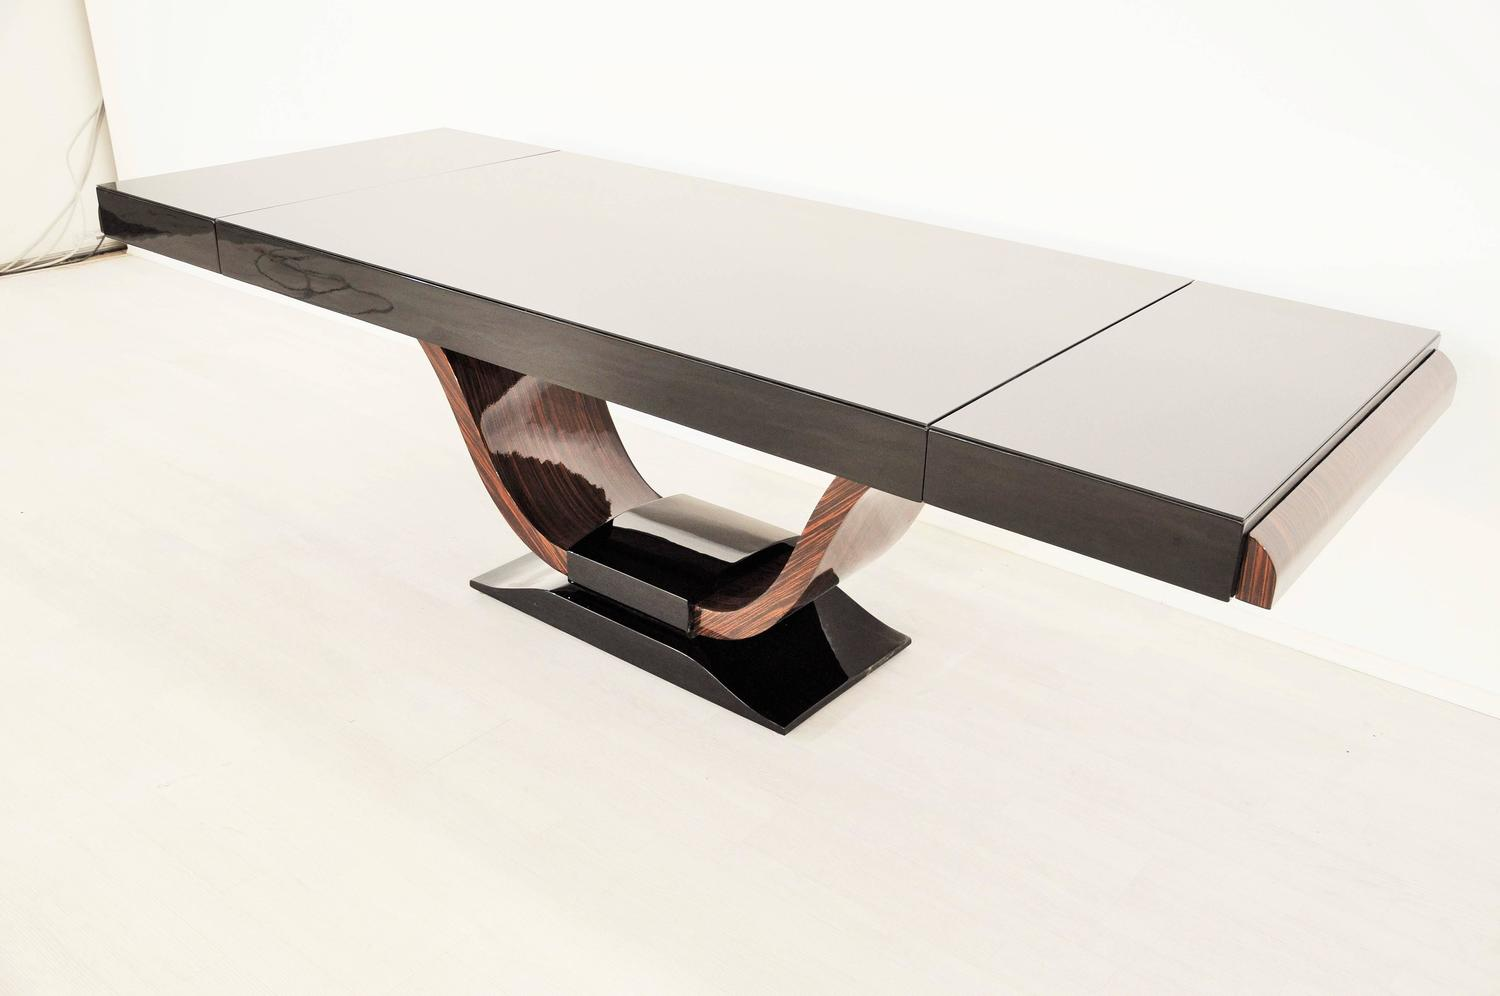 vintage art deco dining table with curved macassar foot at 1stdibs. Black Bedroom Furniture Sets. Home Design Ideas